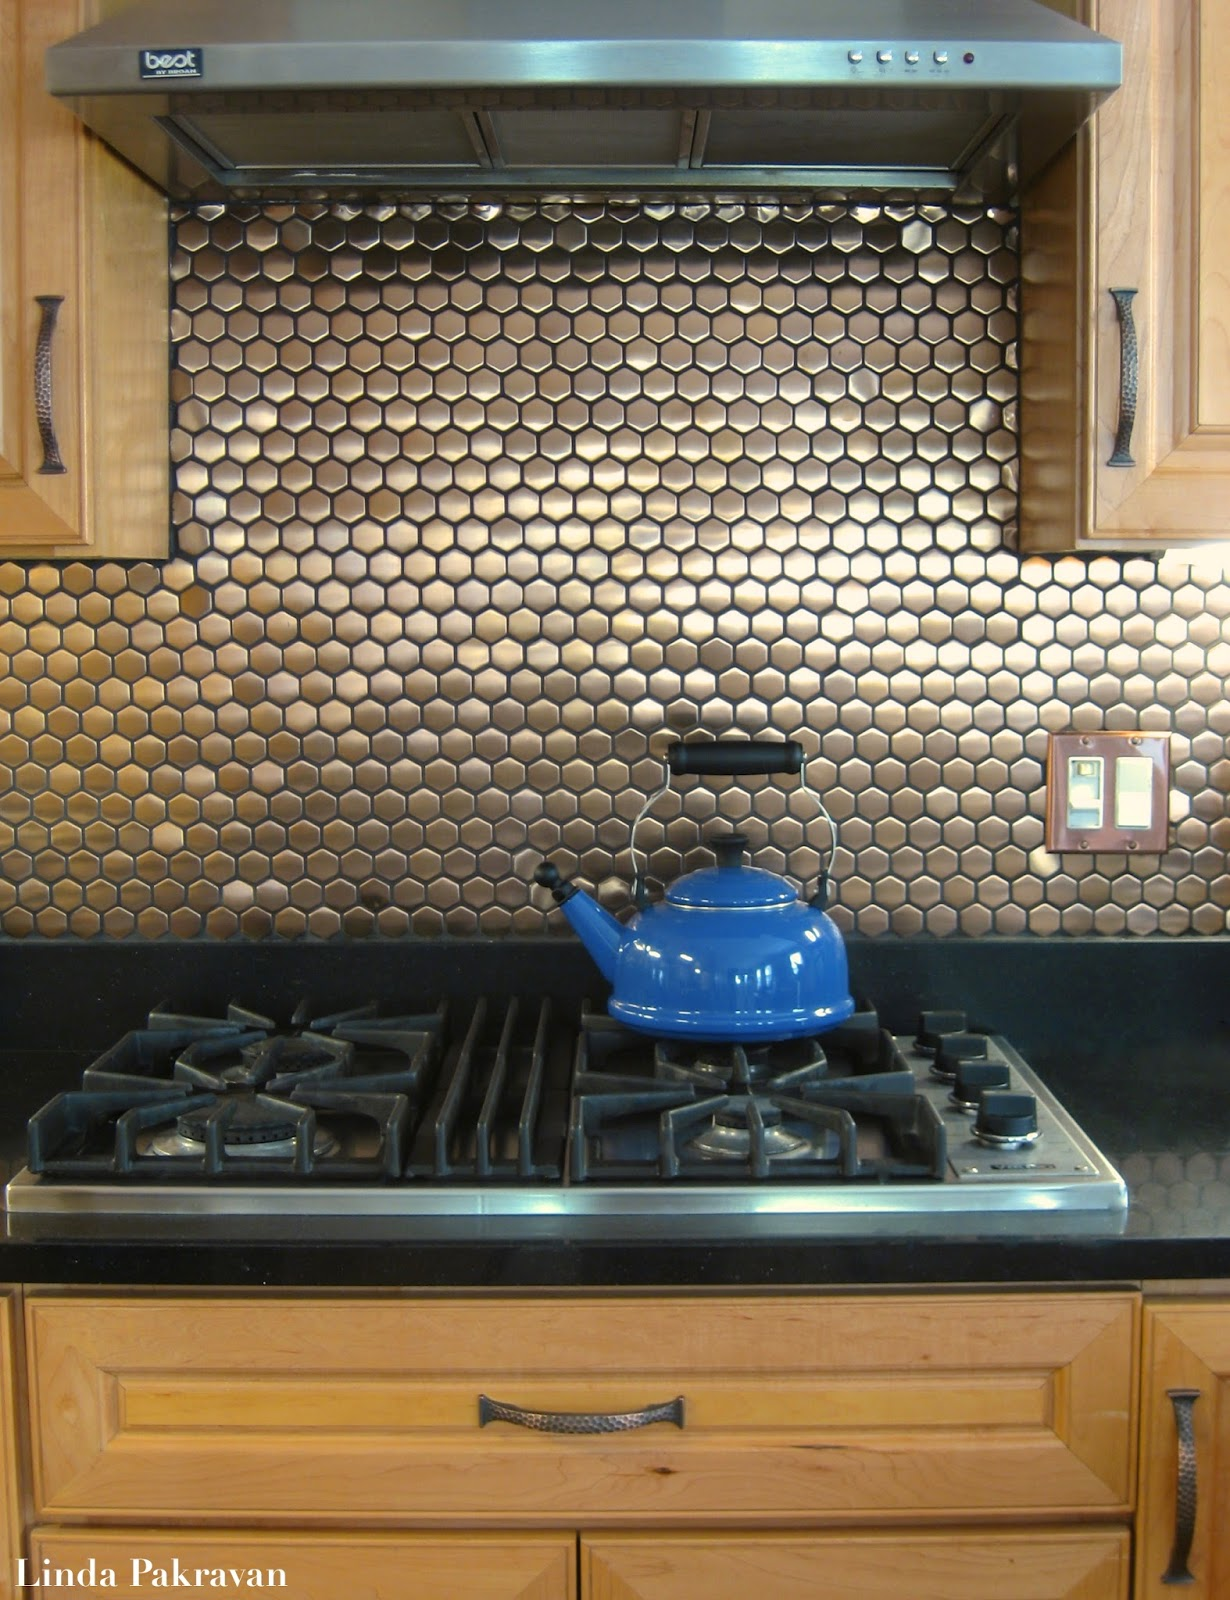 Copper Backsplash Kitchen A Design Snack By Linda Pakravan 04 01 2011 05 01 2011